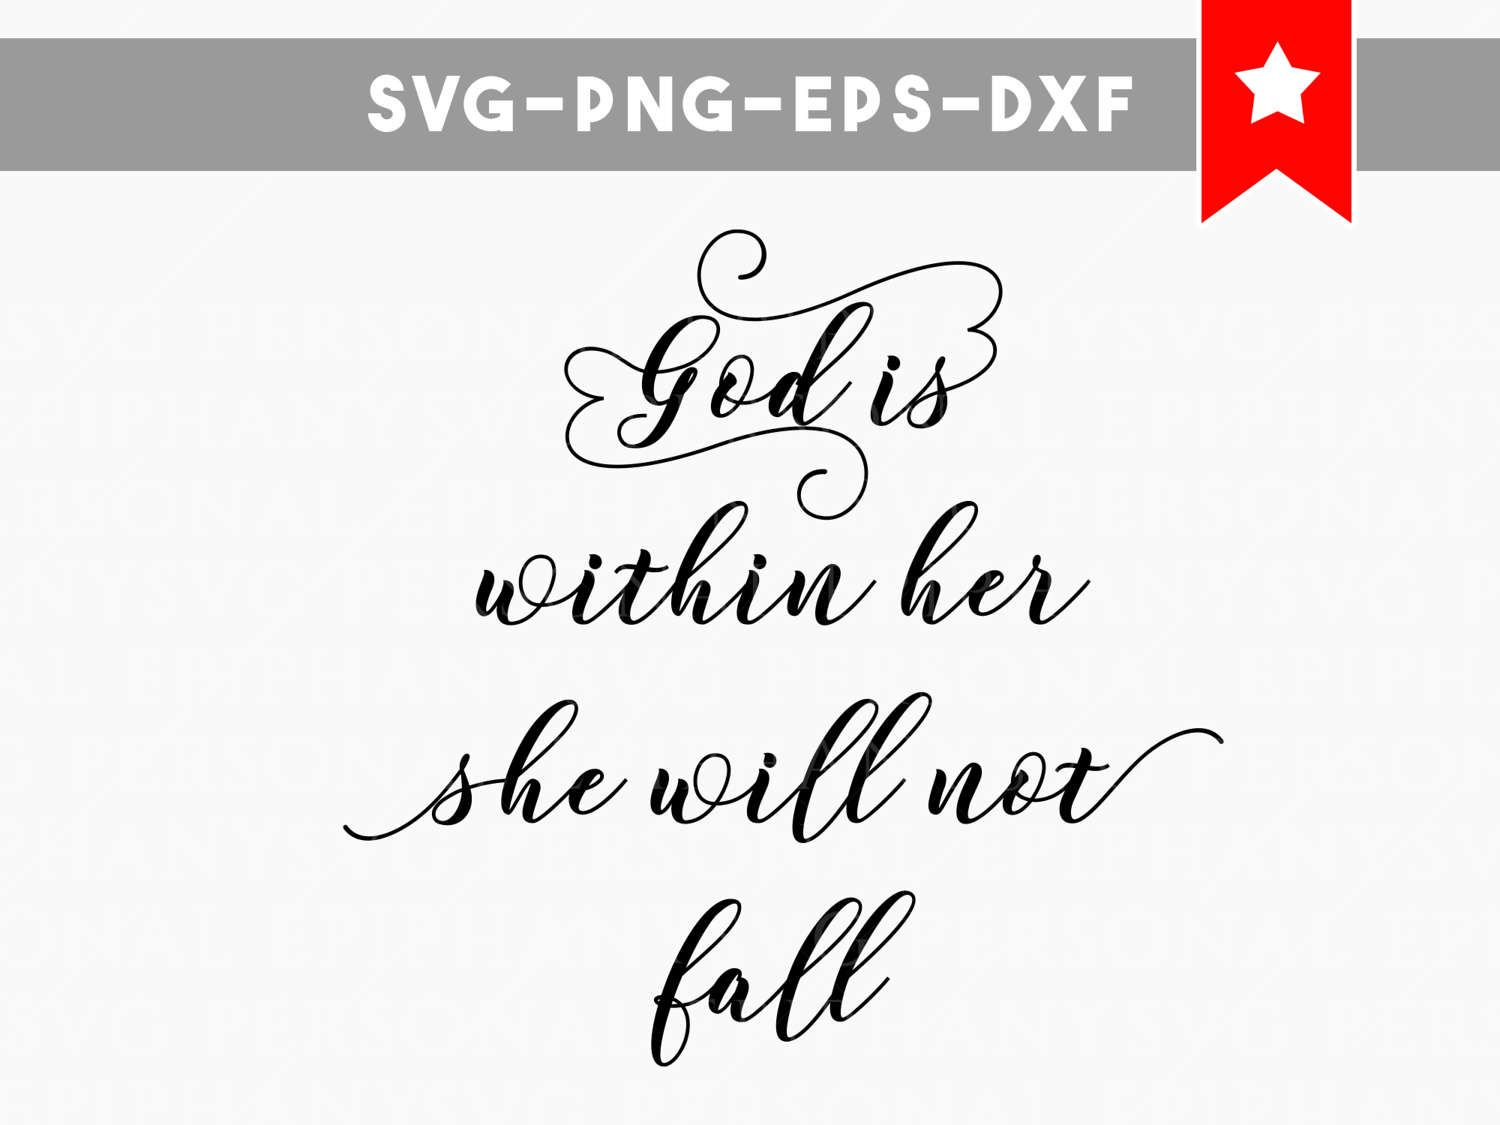 Quotes Within Quotes God Is Within Her Svg She Will Not Fall Svg File Bible Quote Svg